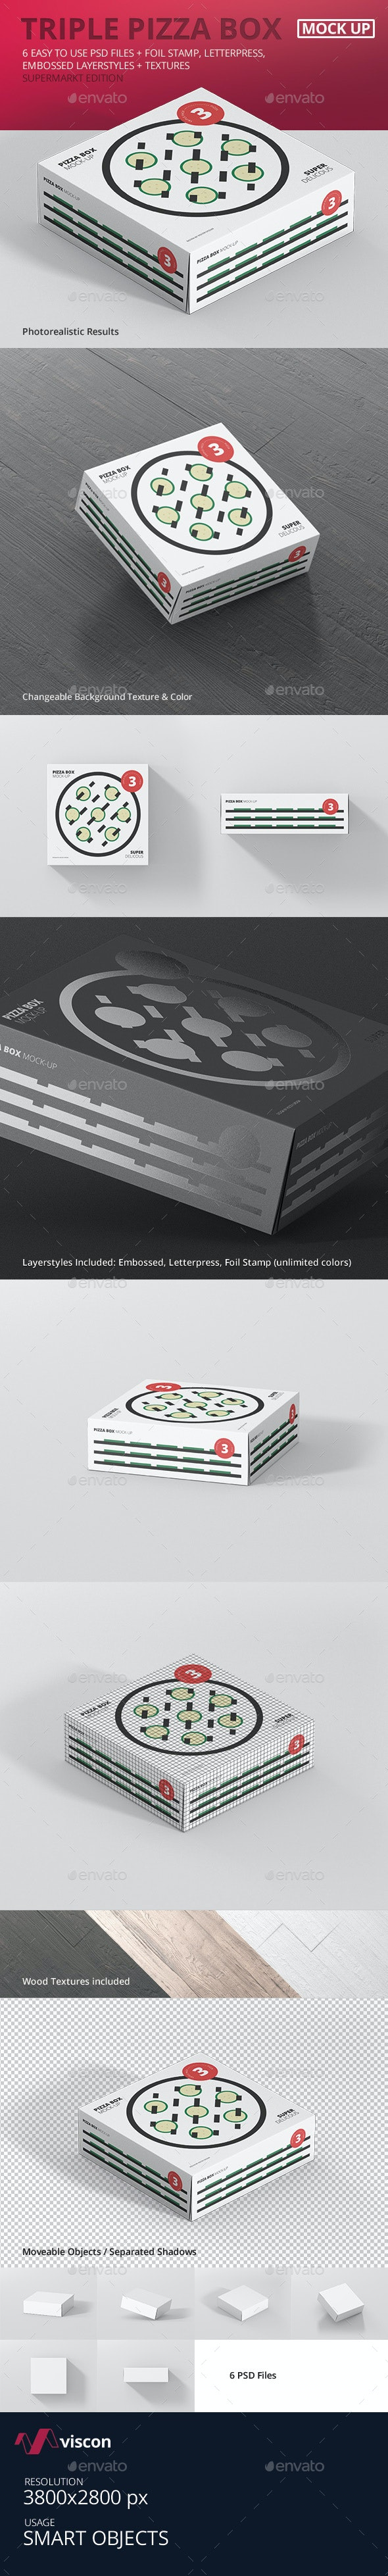 Pizza Box Mock-Up - Triple Pack Supermarket Edition - Food and Drink Packaging